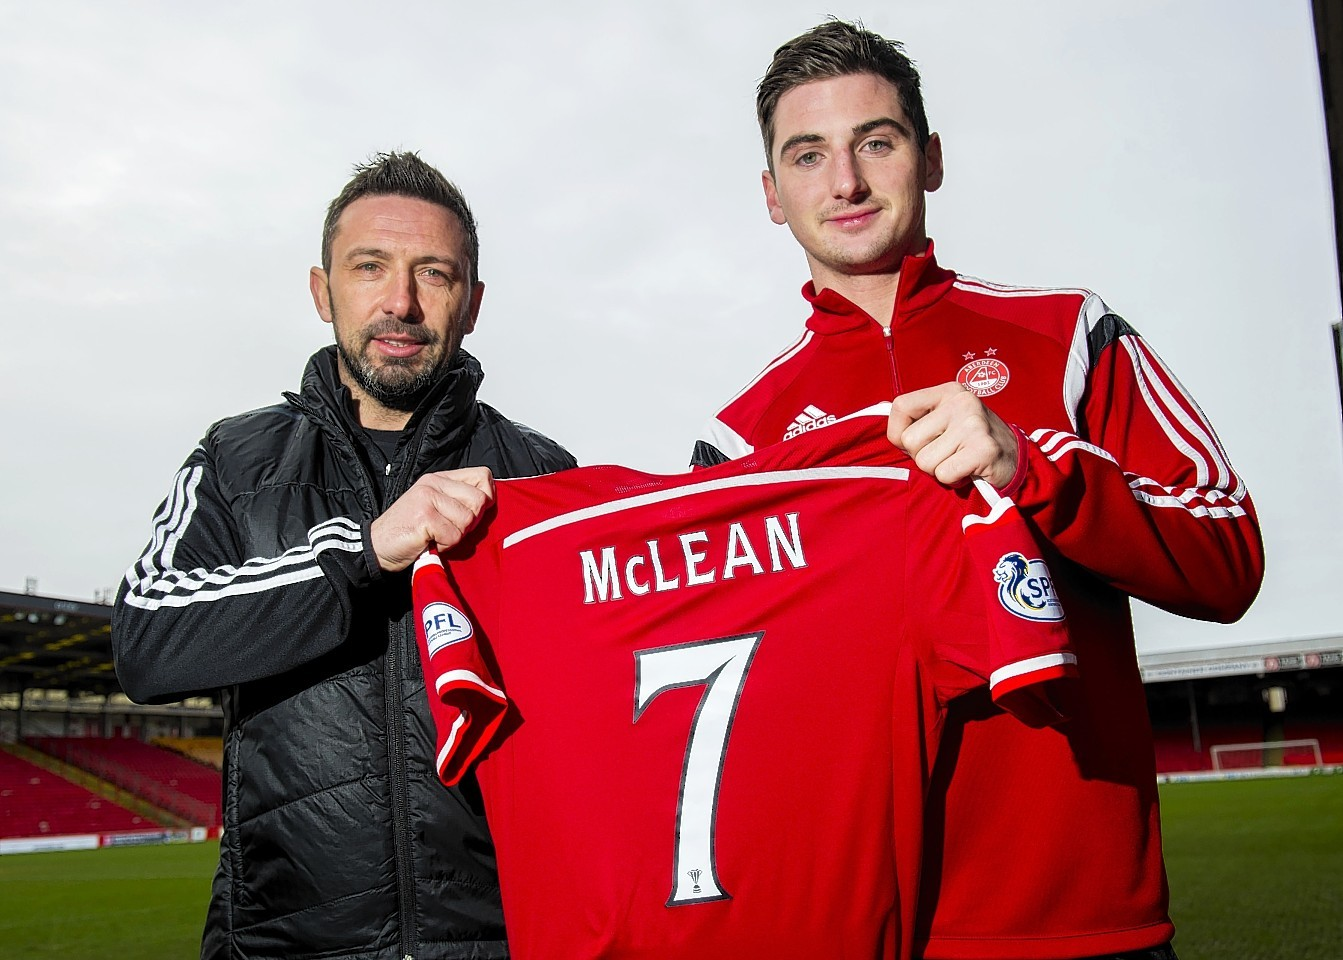 The Dons spent £175,000 on Kenny McLean in January and could invest again this summer